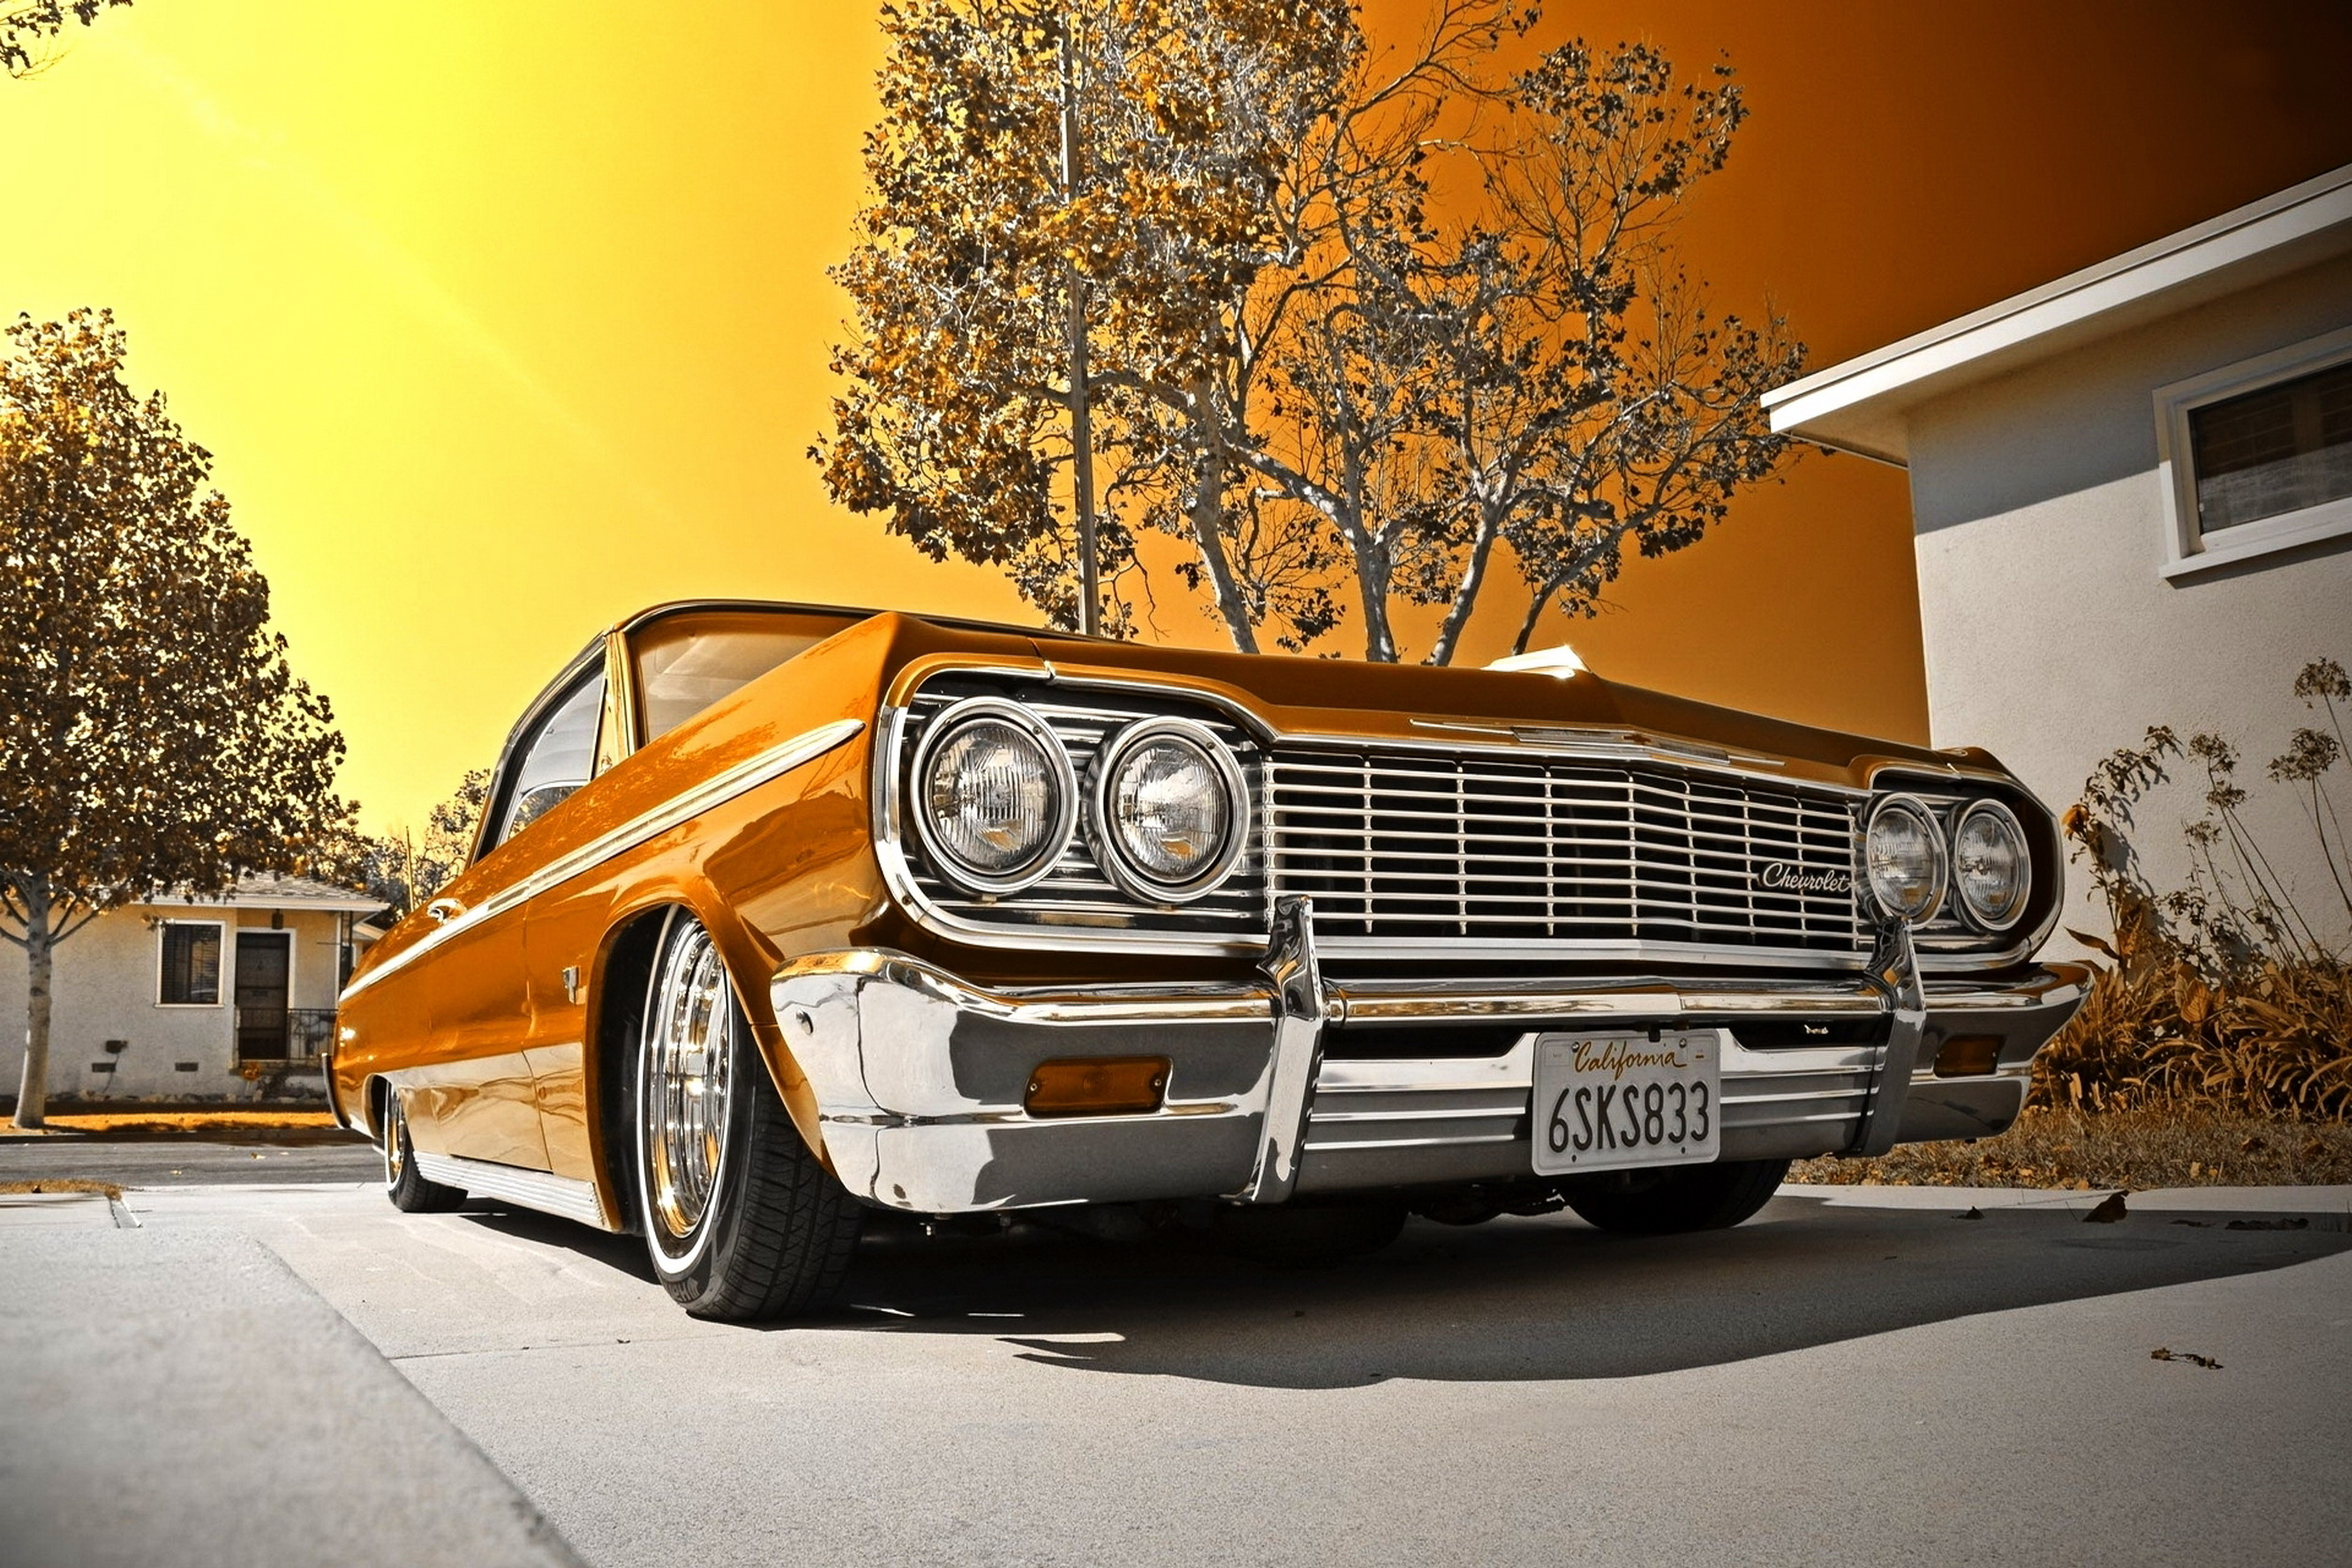 Lowriders Hot Movie Art Silk Poster Print 13x20 24x36 inches-02